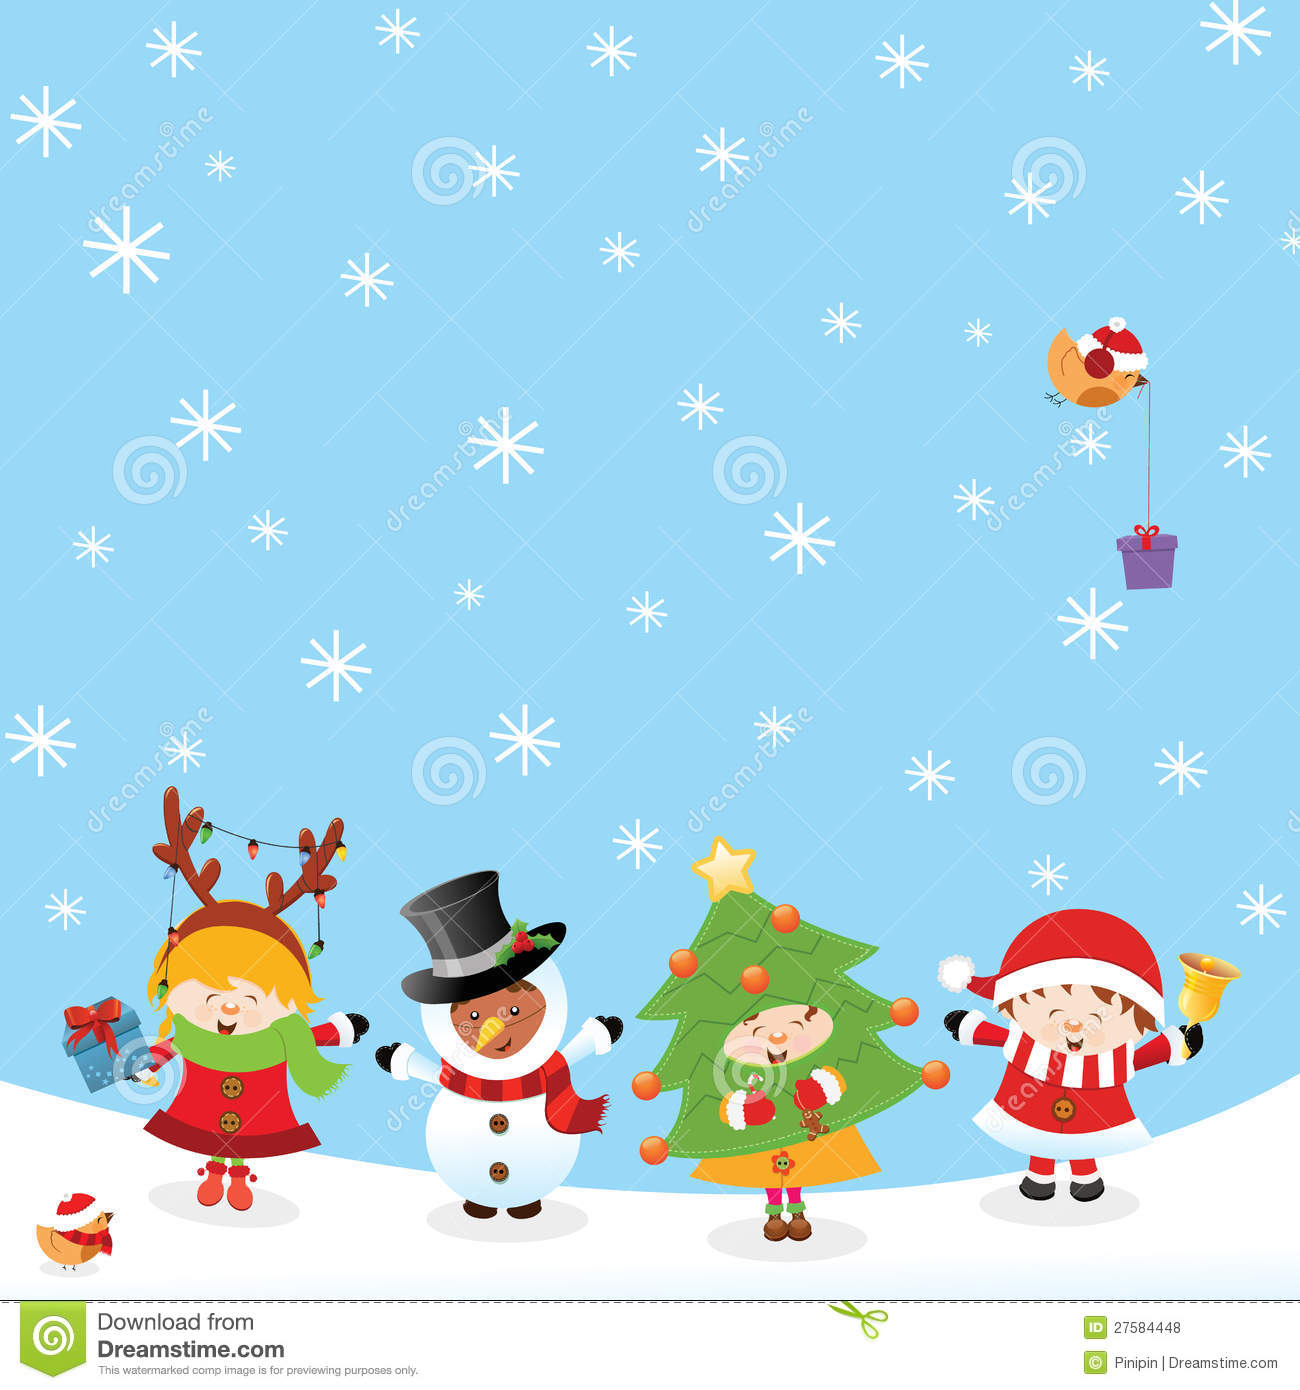 Kids Christmas.Kids With Christmas Costume Stock Vector Illustration Of